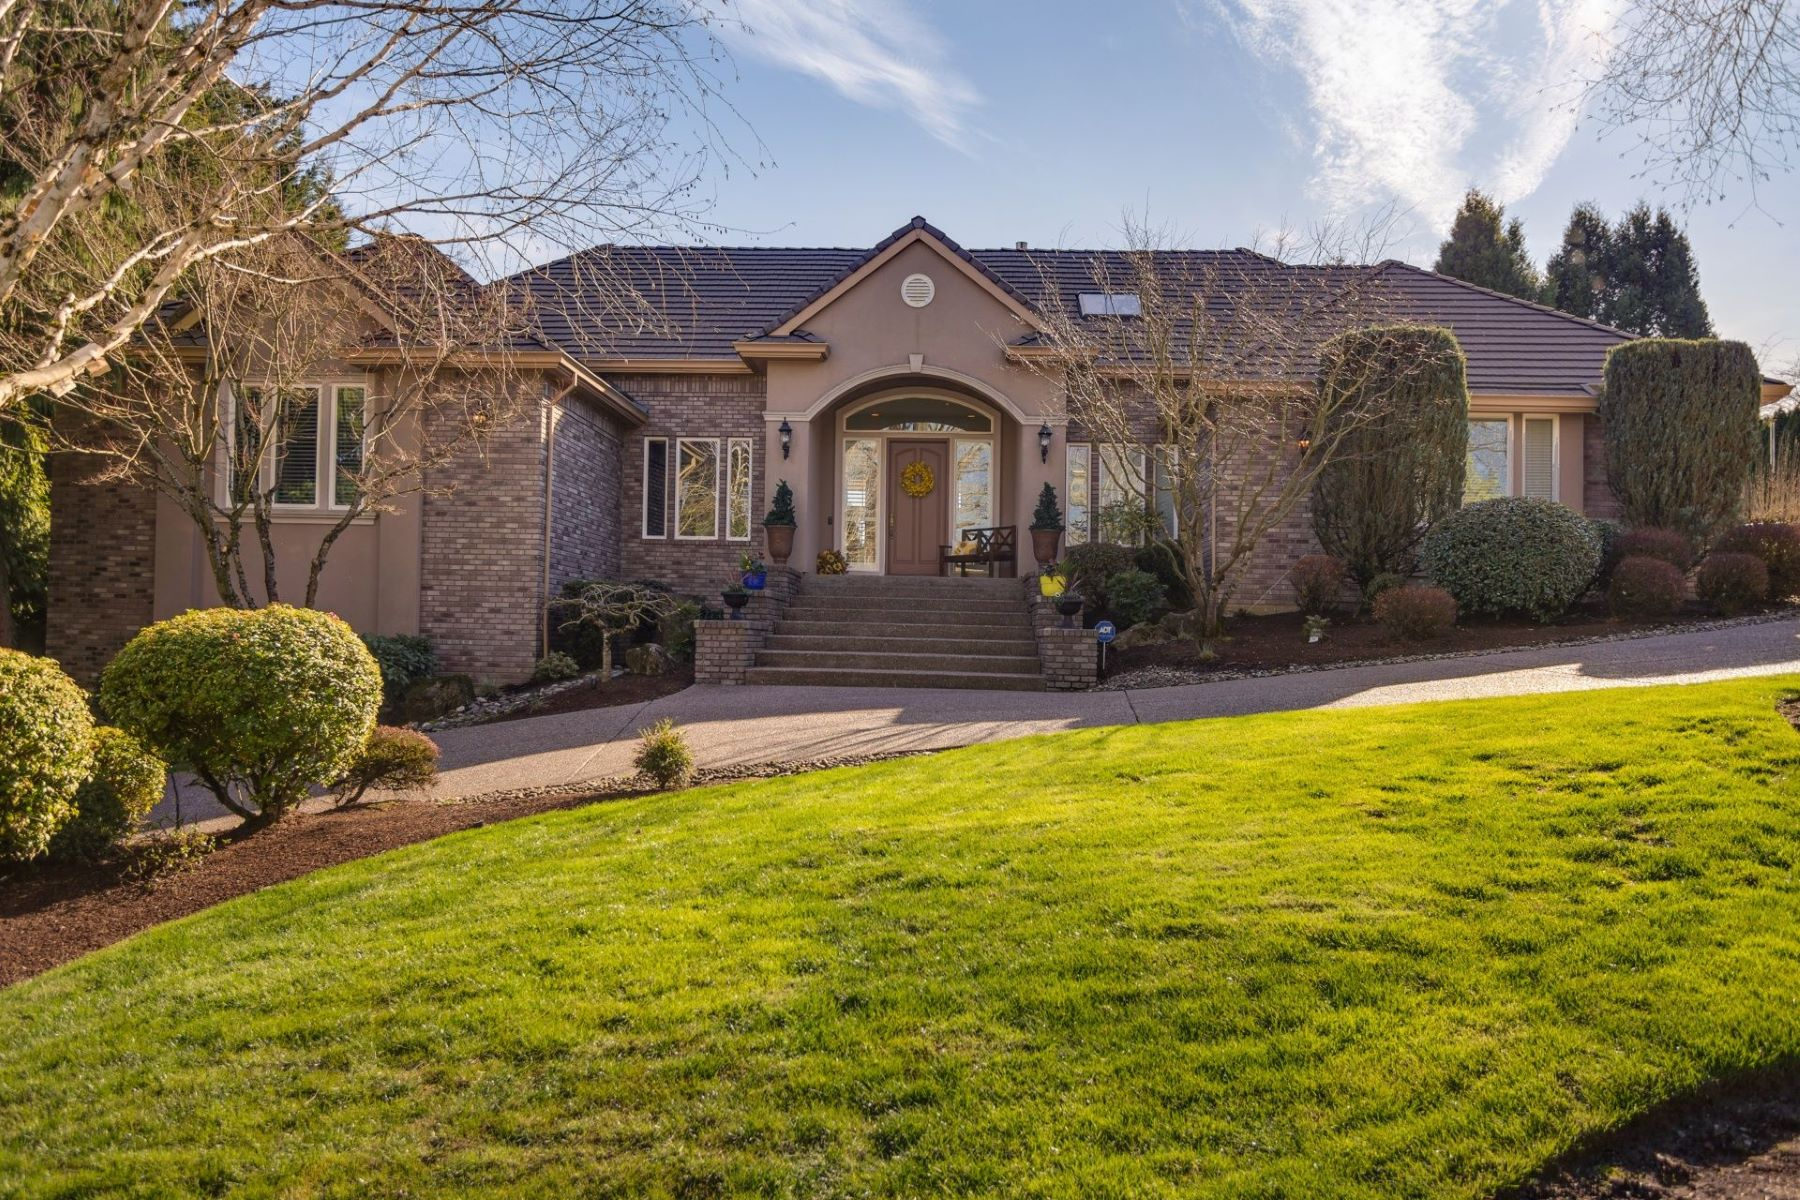 Other Residential Homes for Active at 18820 GREEN BLUFF DR Lake Oswego, OR 97034 18820 GREEN BLUFF DR Lake Oswego, Oregon 97034 United States